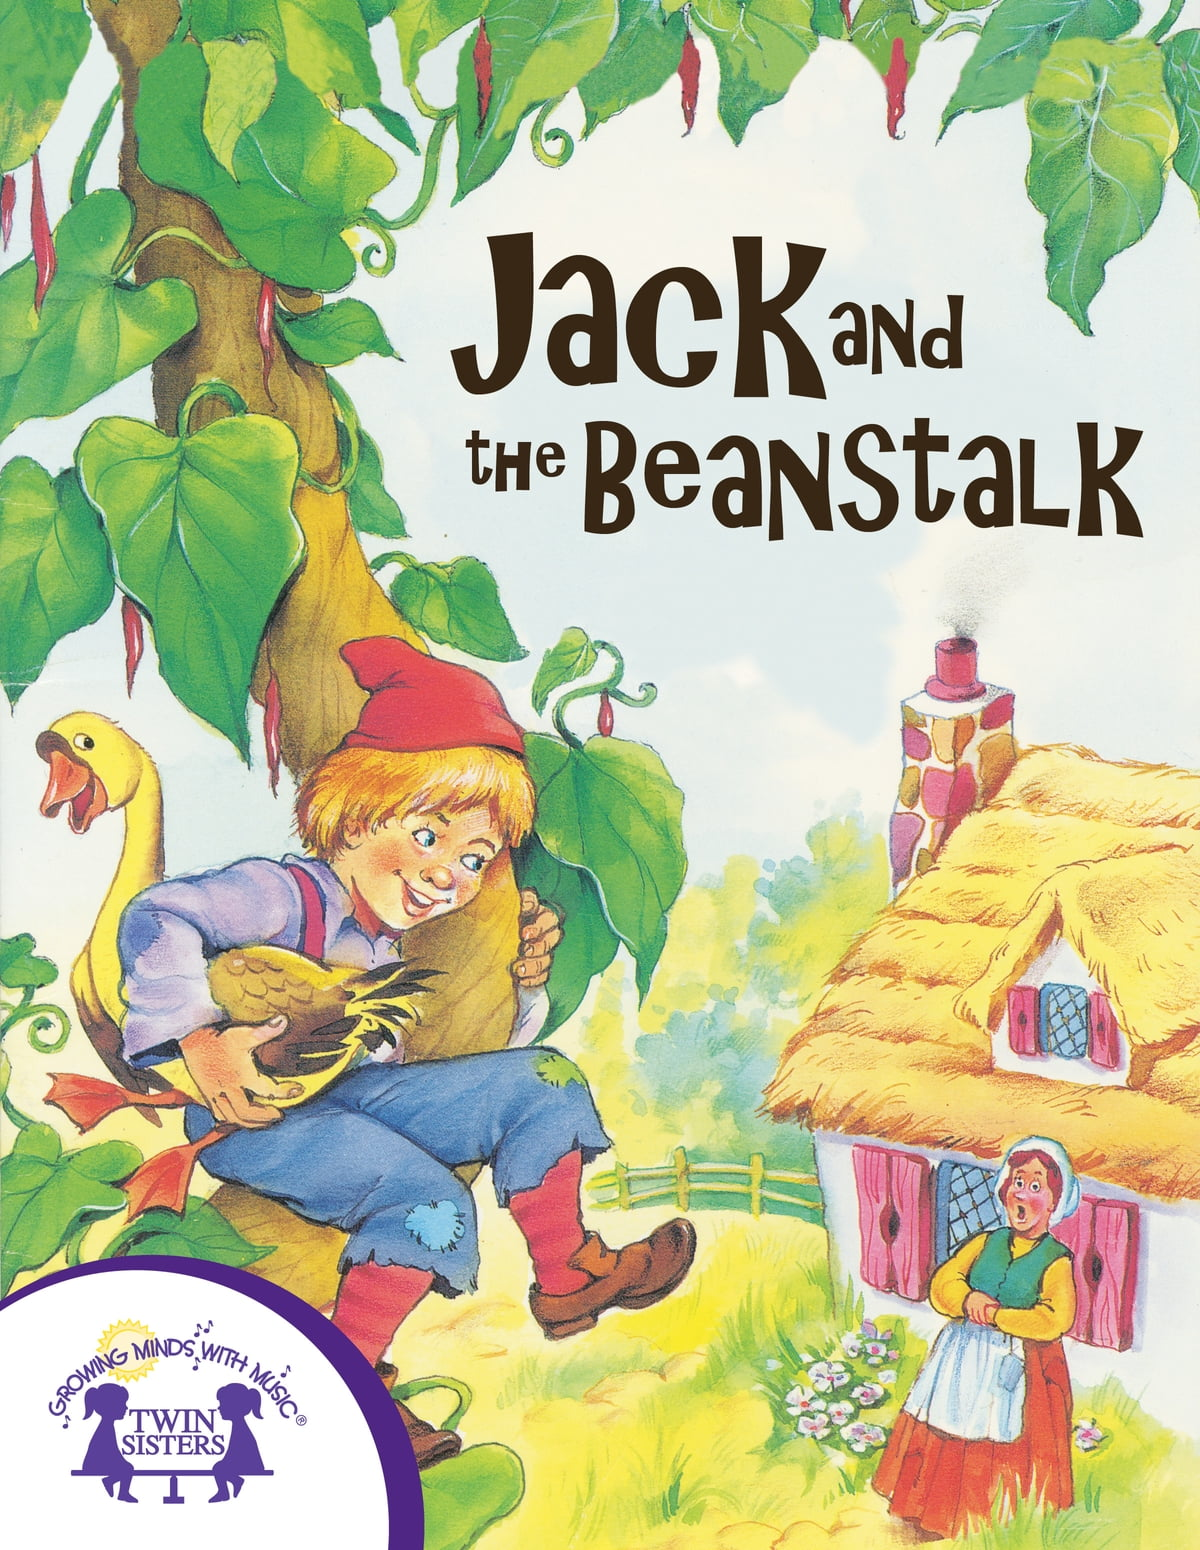 the Jack McMillan and Beanstalk by Rakuten Naomi ebook Kobo hdsQrCt